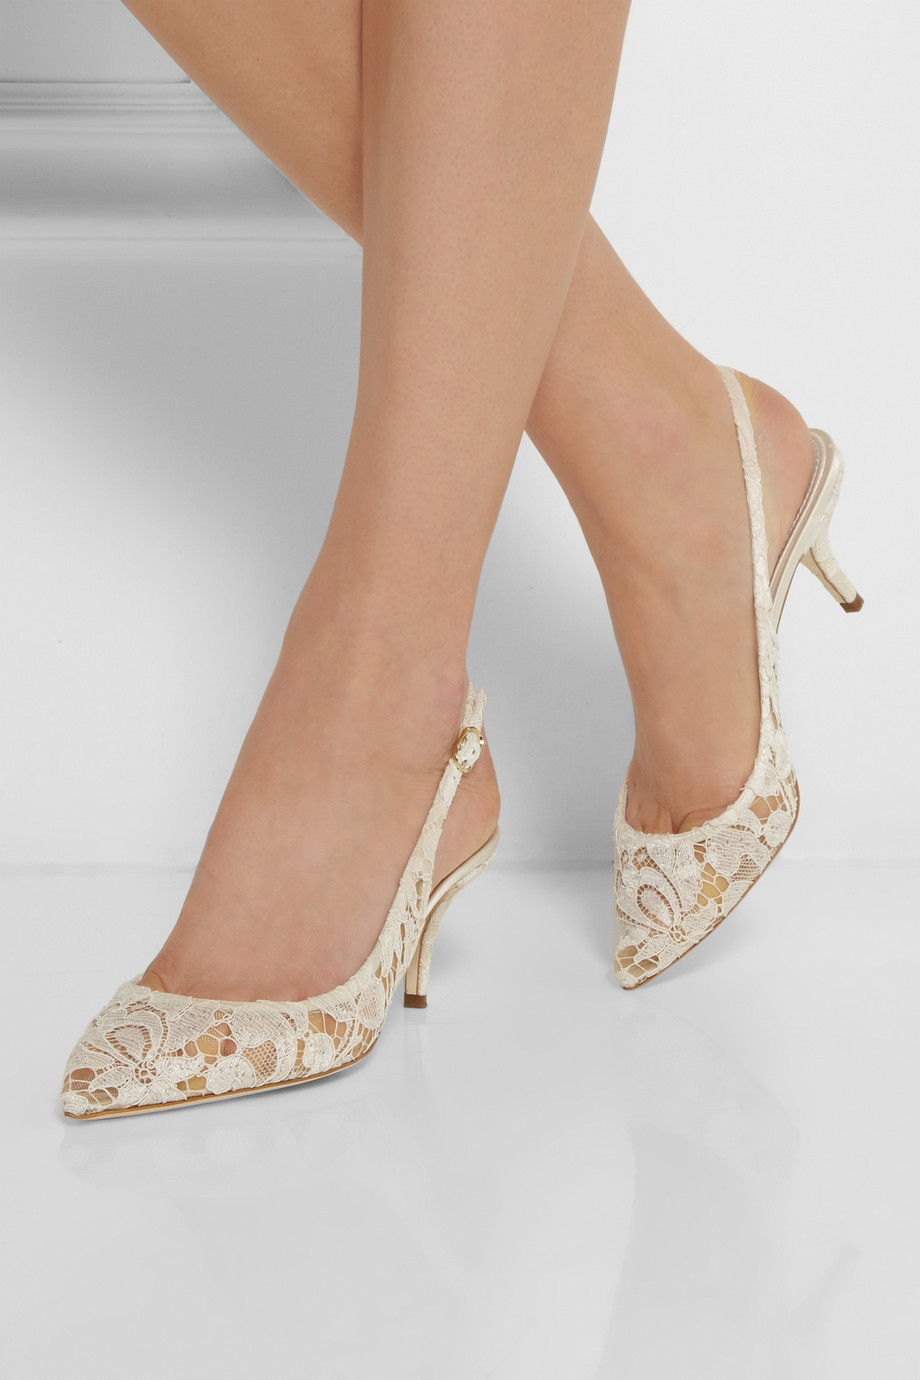 Dolce & gabbana Lace Slingback Pumps in White